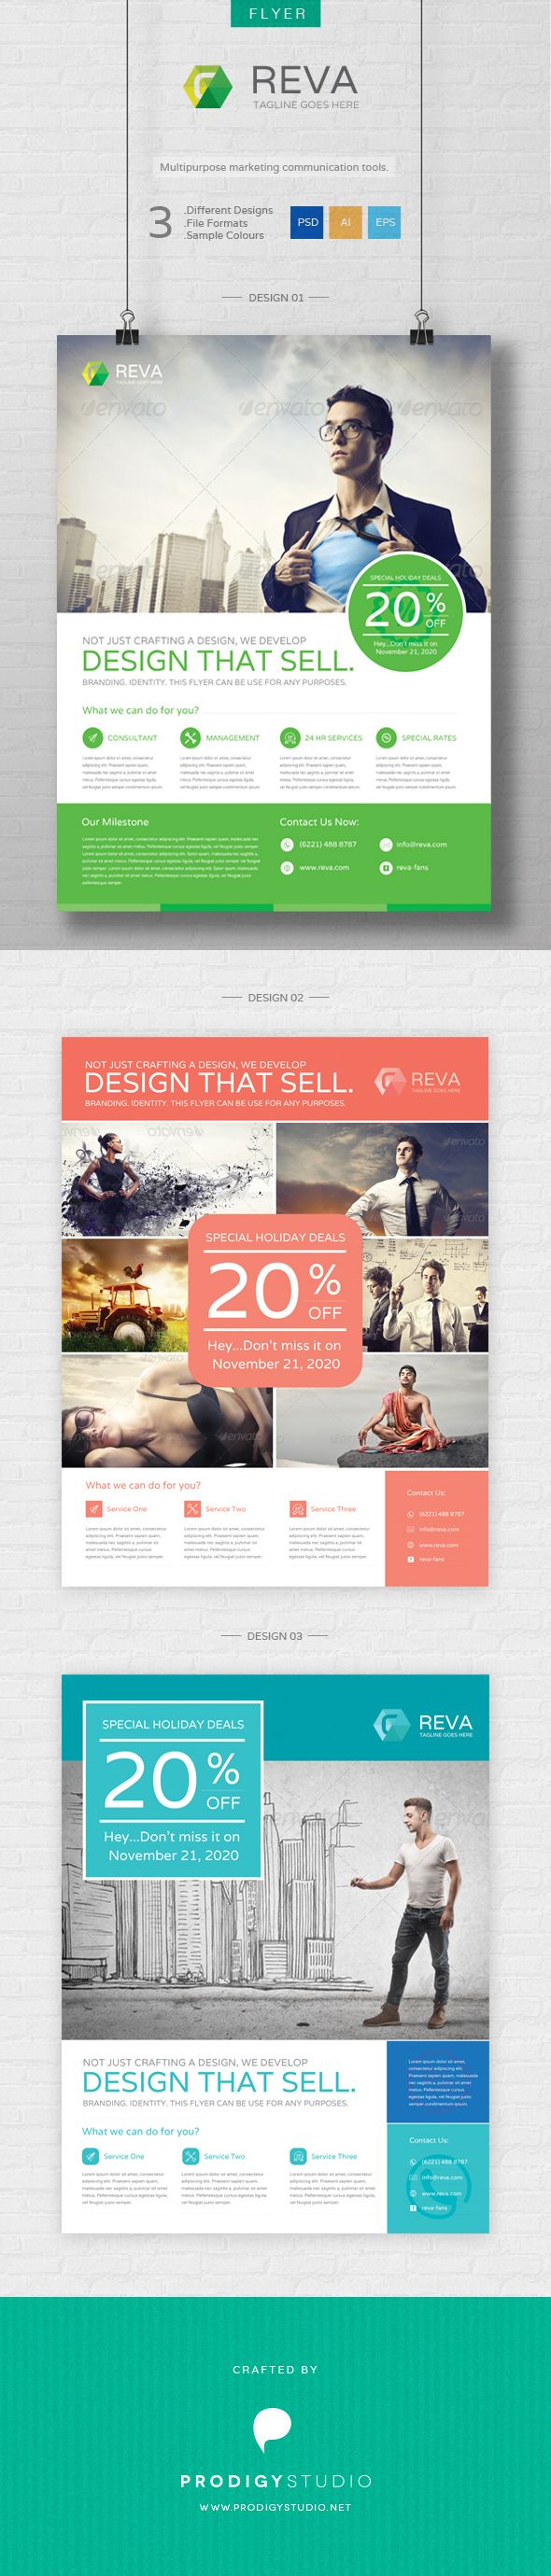 Promotional flyer, clean flyer, multi purpose flyer are suitable purpose using Reva flyer template. File Features:  - CMYK in PSD, AI and EPS file format – 300 dpi resolution - 8.5×11 inch size - 3 color samp  Download here: http://graphicriver.net/item/reva-flyer-template/6763140?ref=prodigystudio